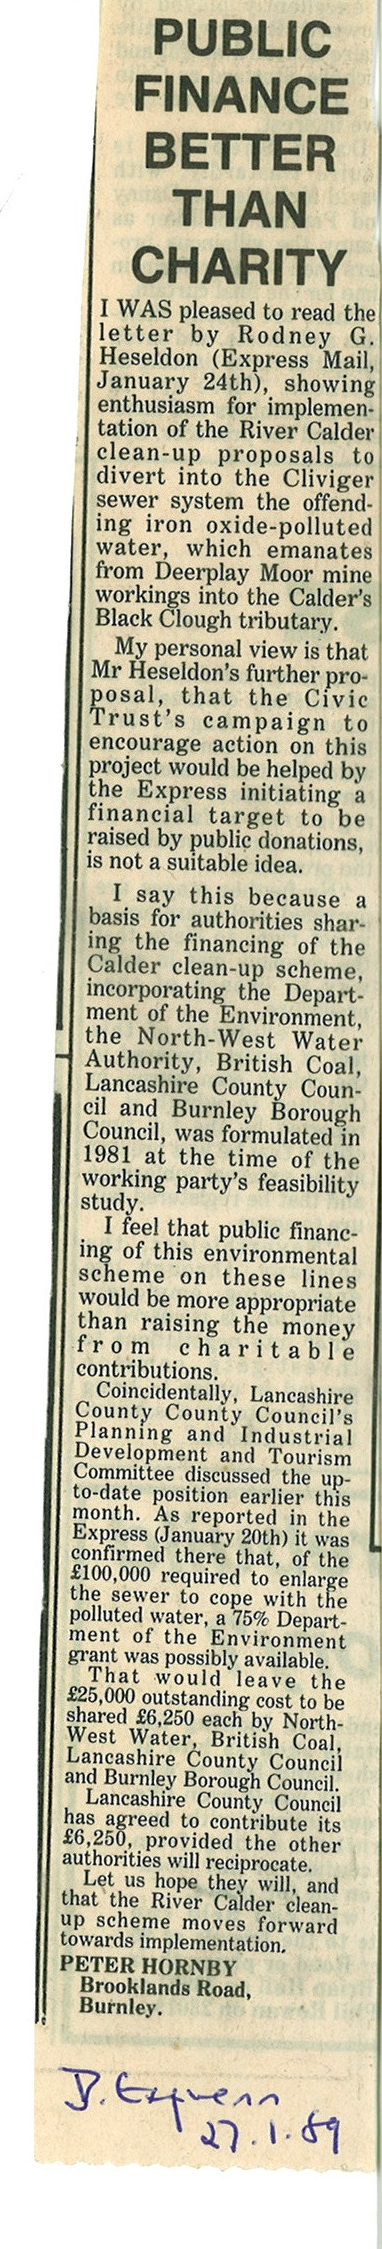 1989 Jan 27 Public finance better than charity.jpg